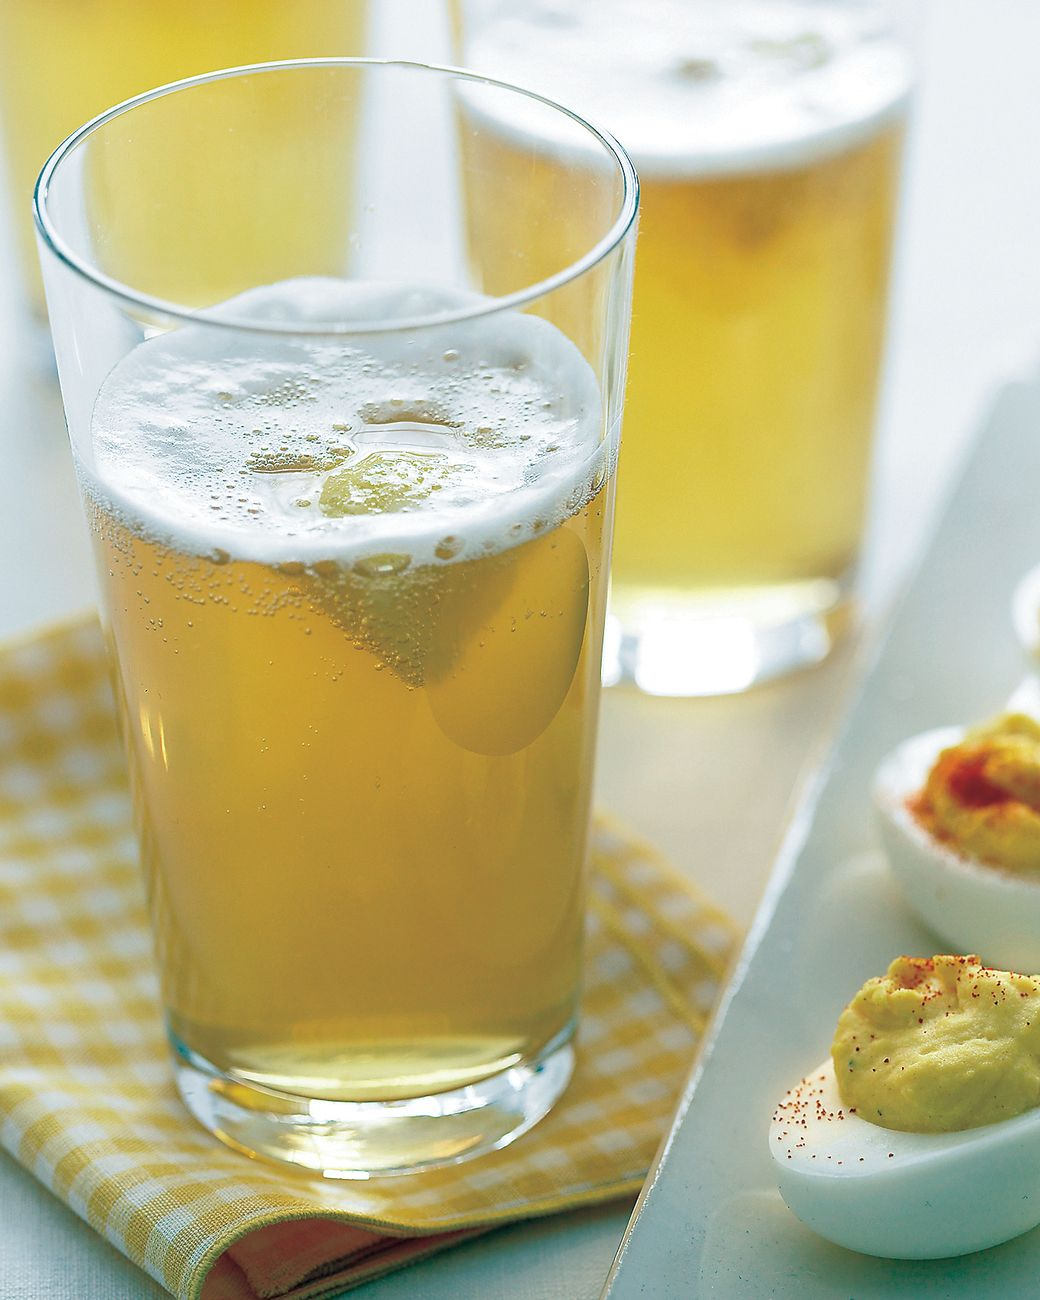 Blend lemonade with beer for a mellow-yellow refresher.